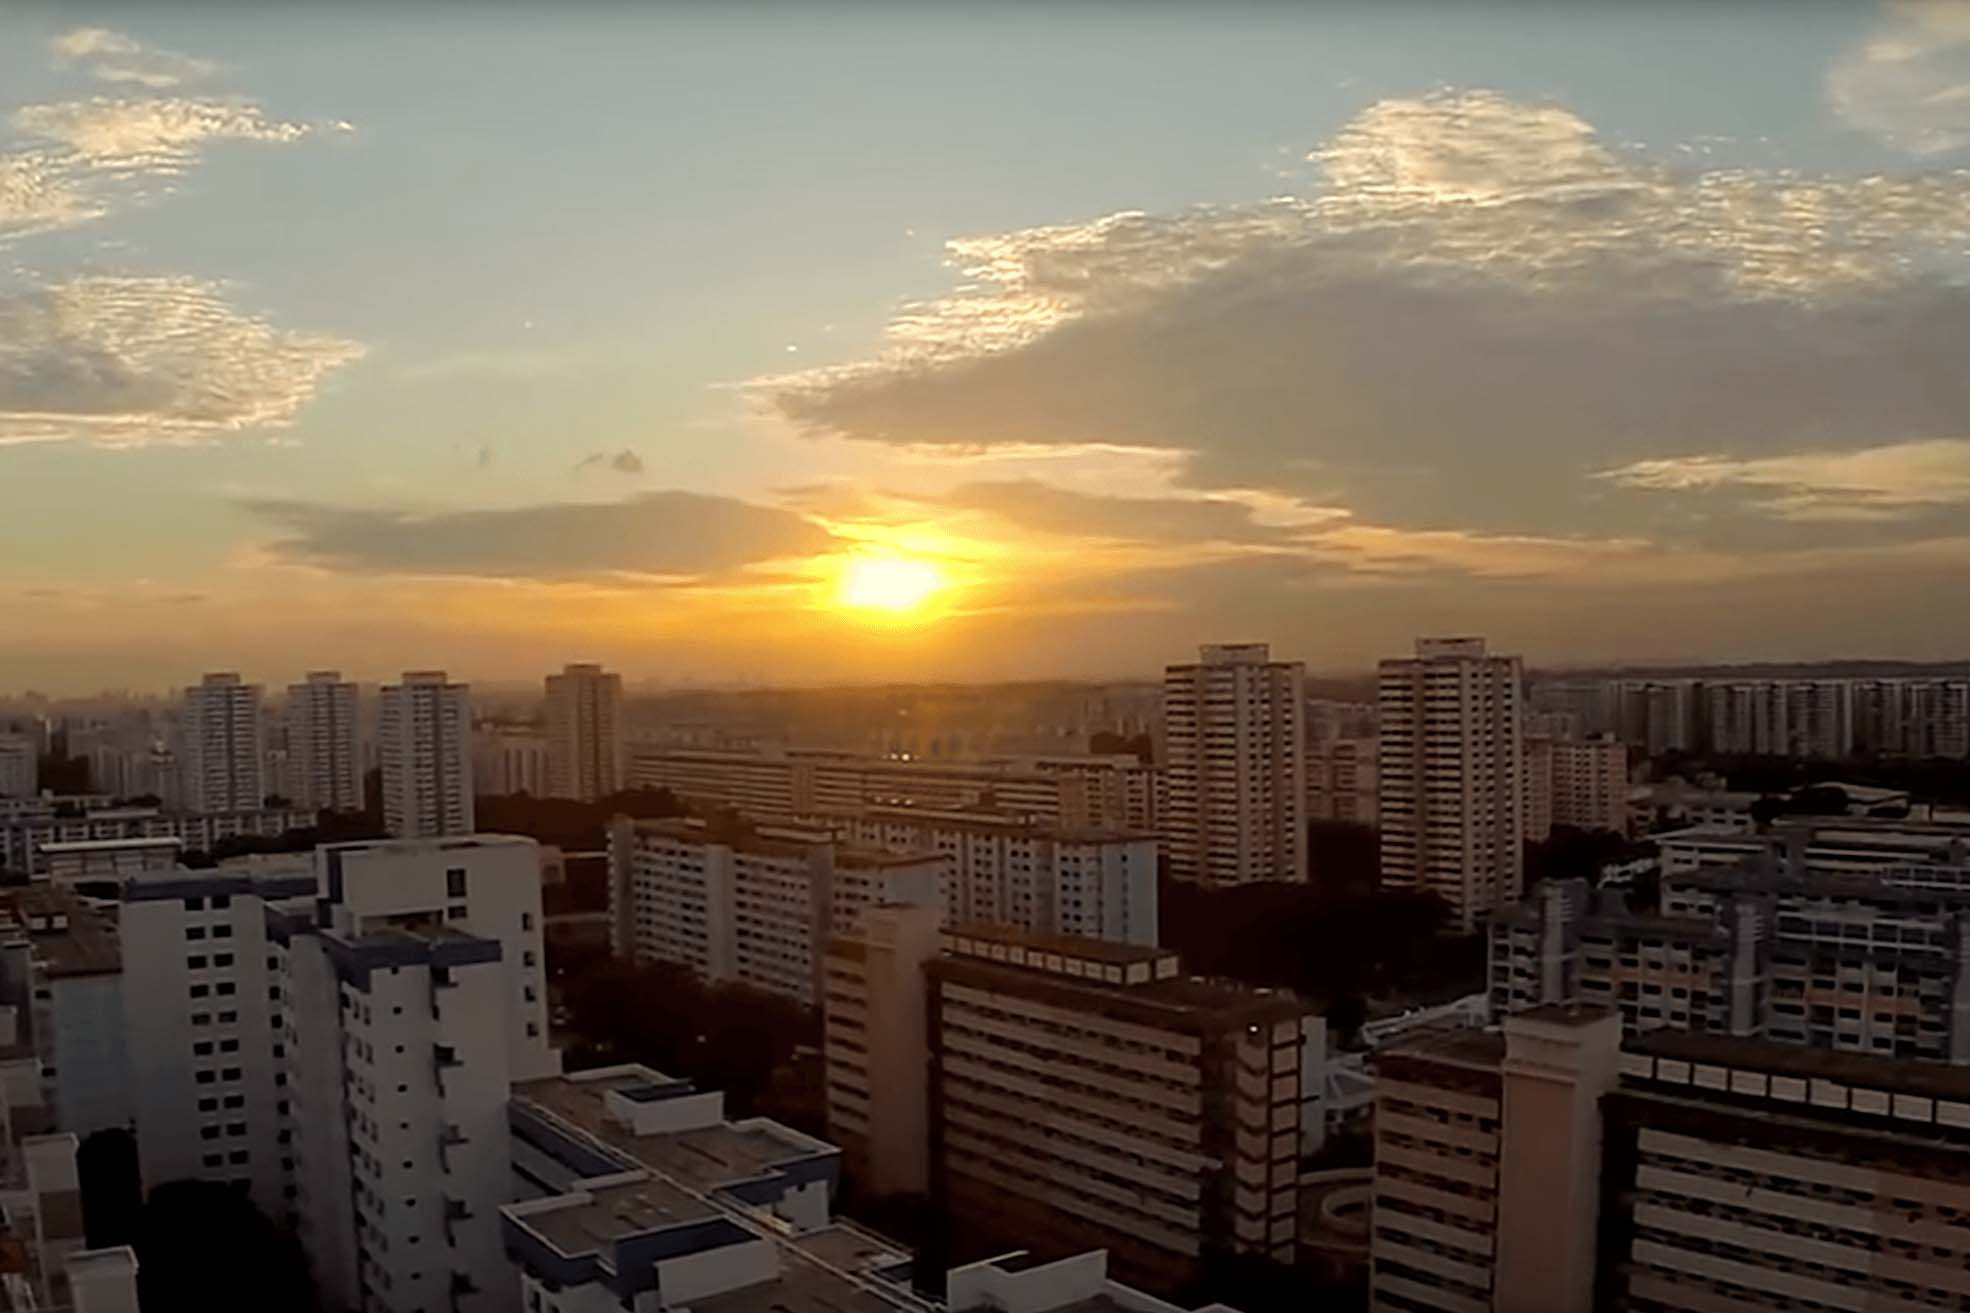 View of Singapore at sunset